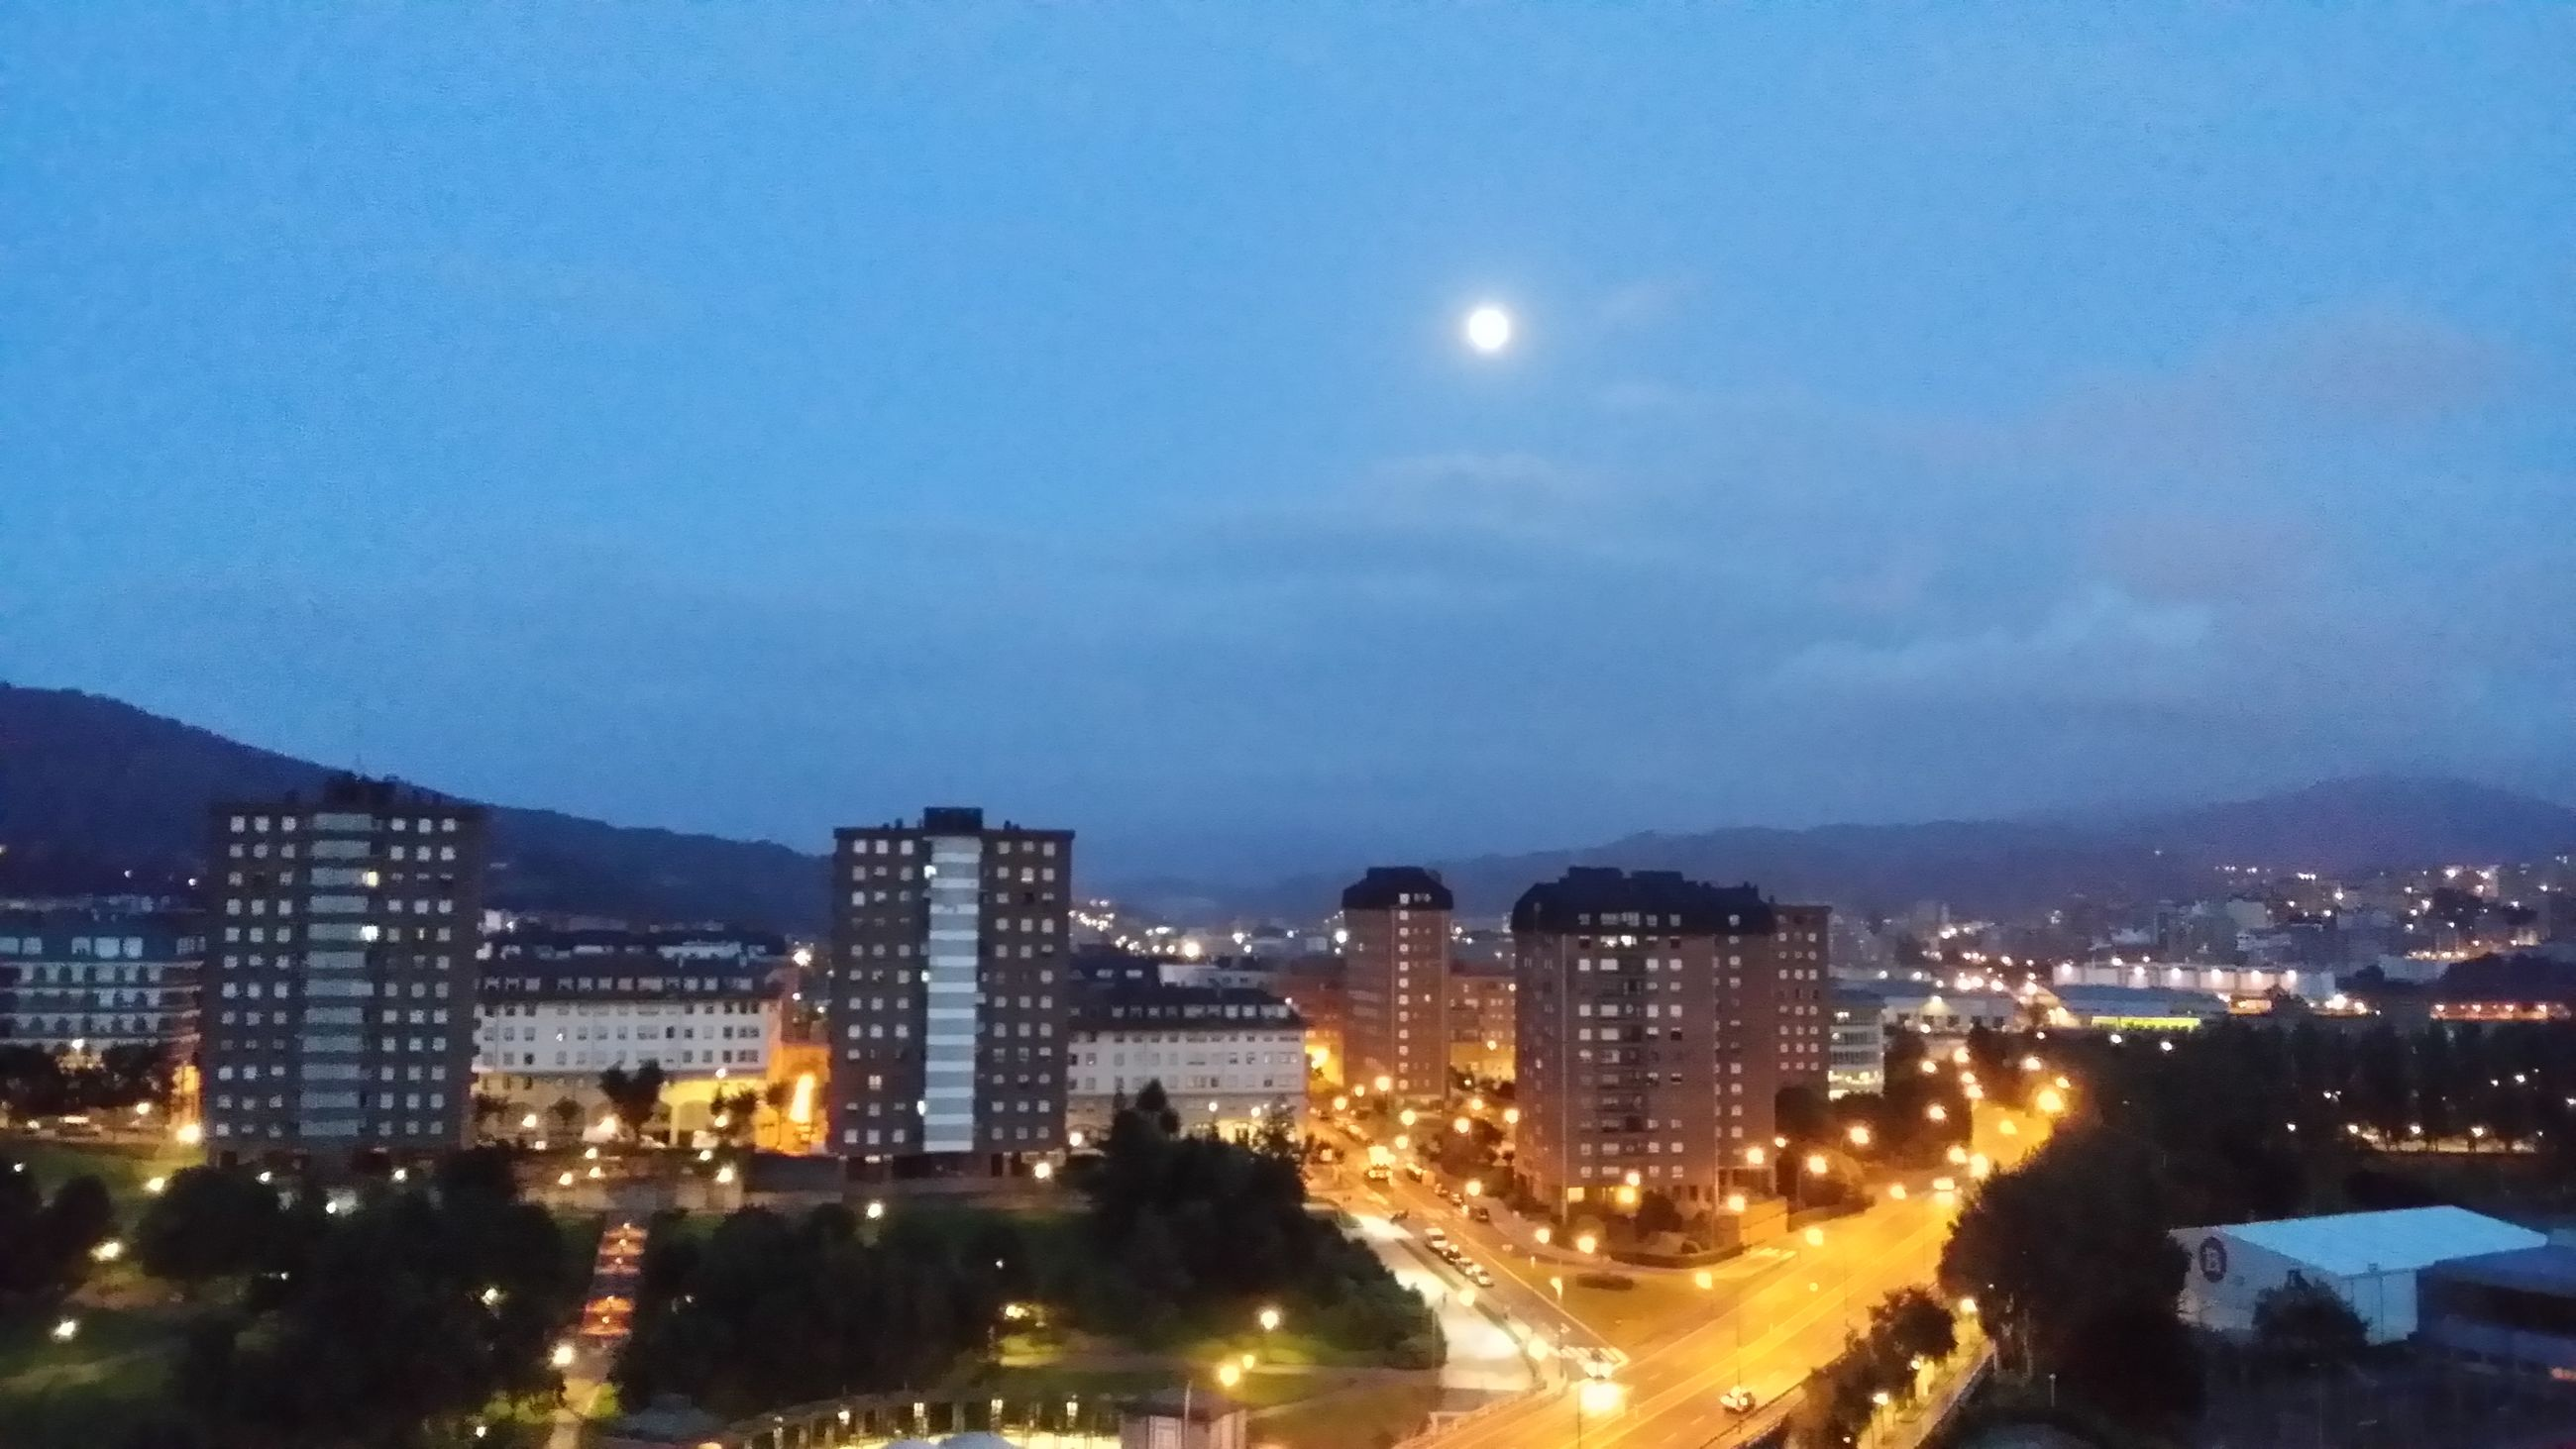 illuminated, night, building exterior, city, cityscape, architecture, built structure, sky, moon, high angle view, residential district, residential building, mountain, city life, residential structure, dusk, outdoors, crowded, light - natural phenomenon, no people